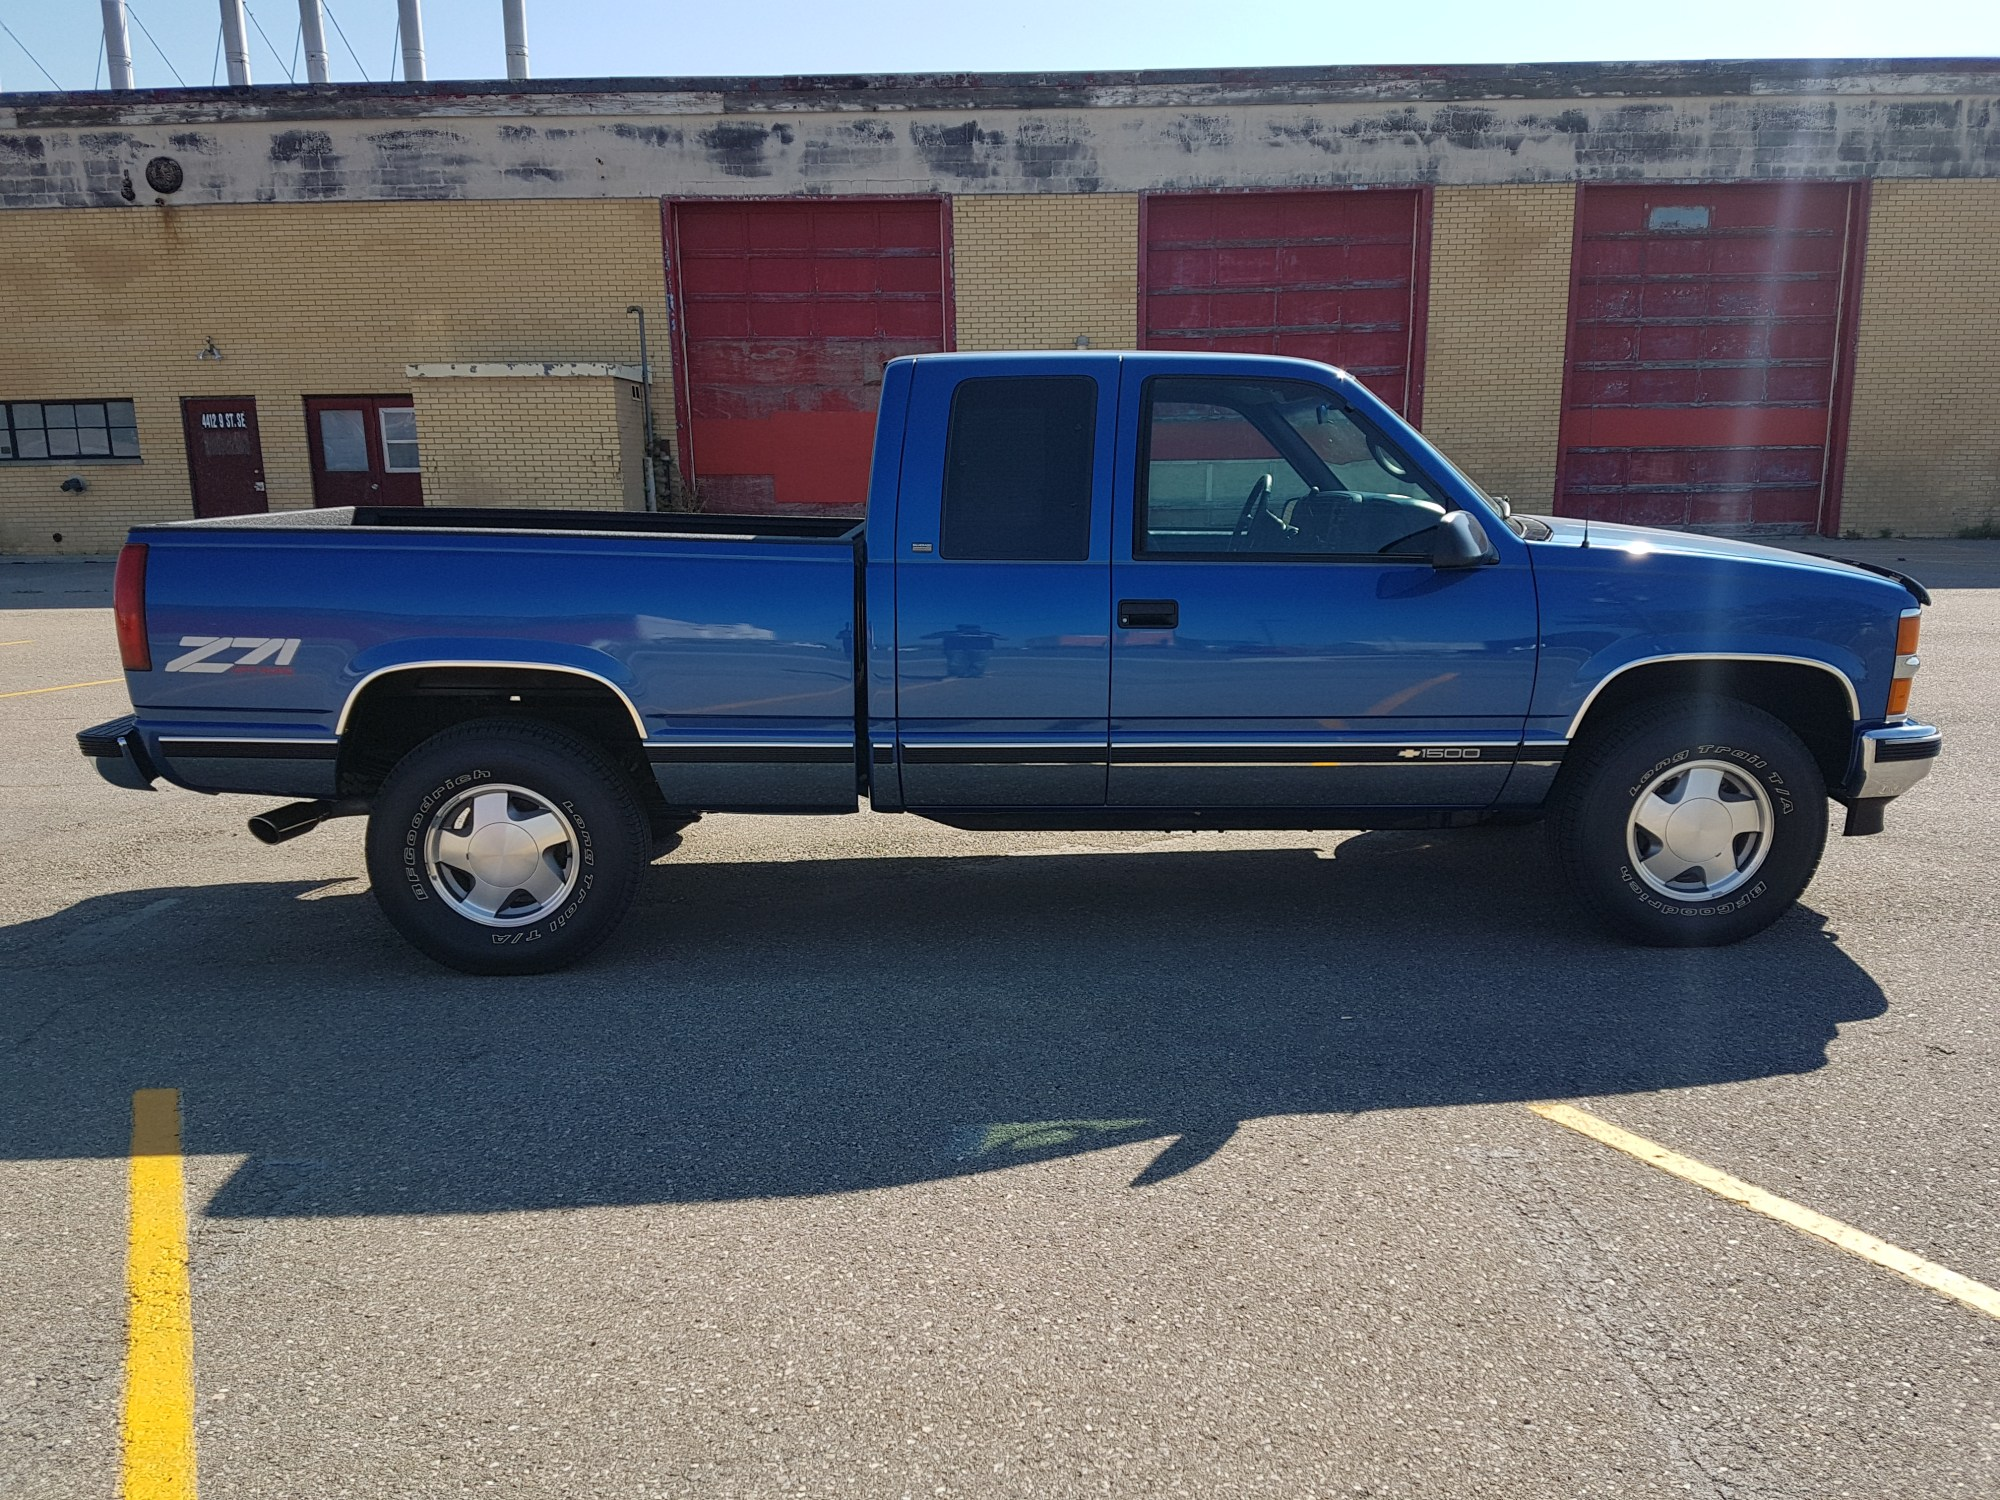 hight resolution of 1997 chevrolet 1500 lot 118 archive with reserve chev chev2 chev3